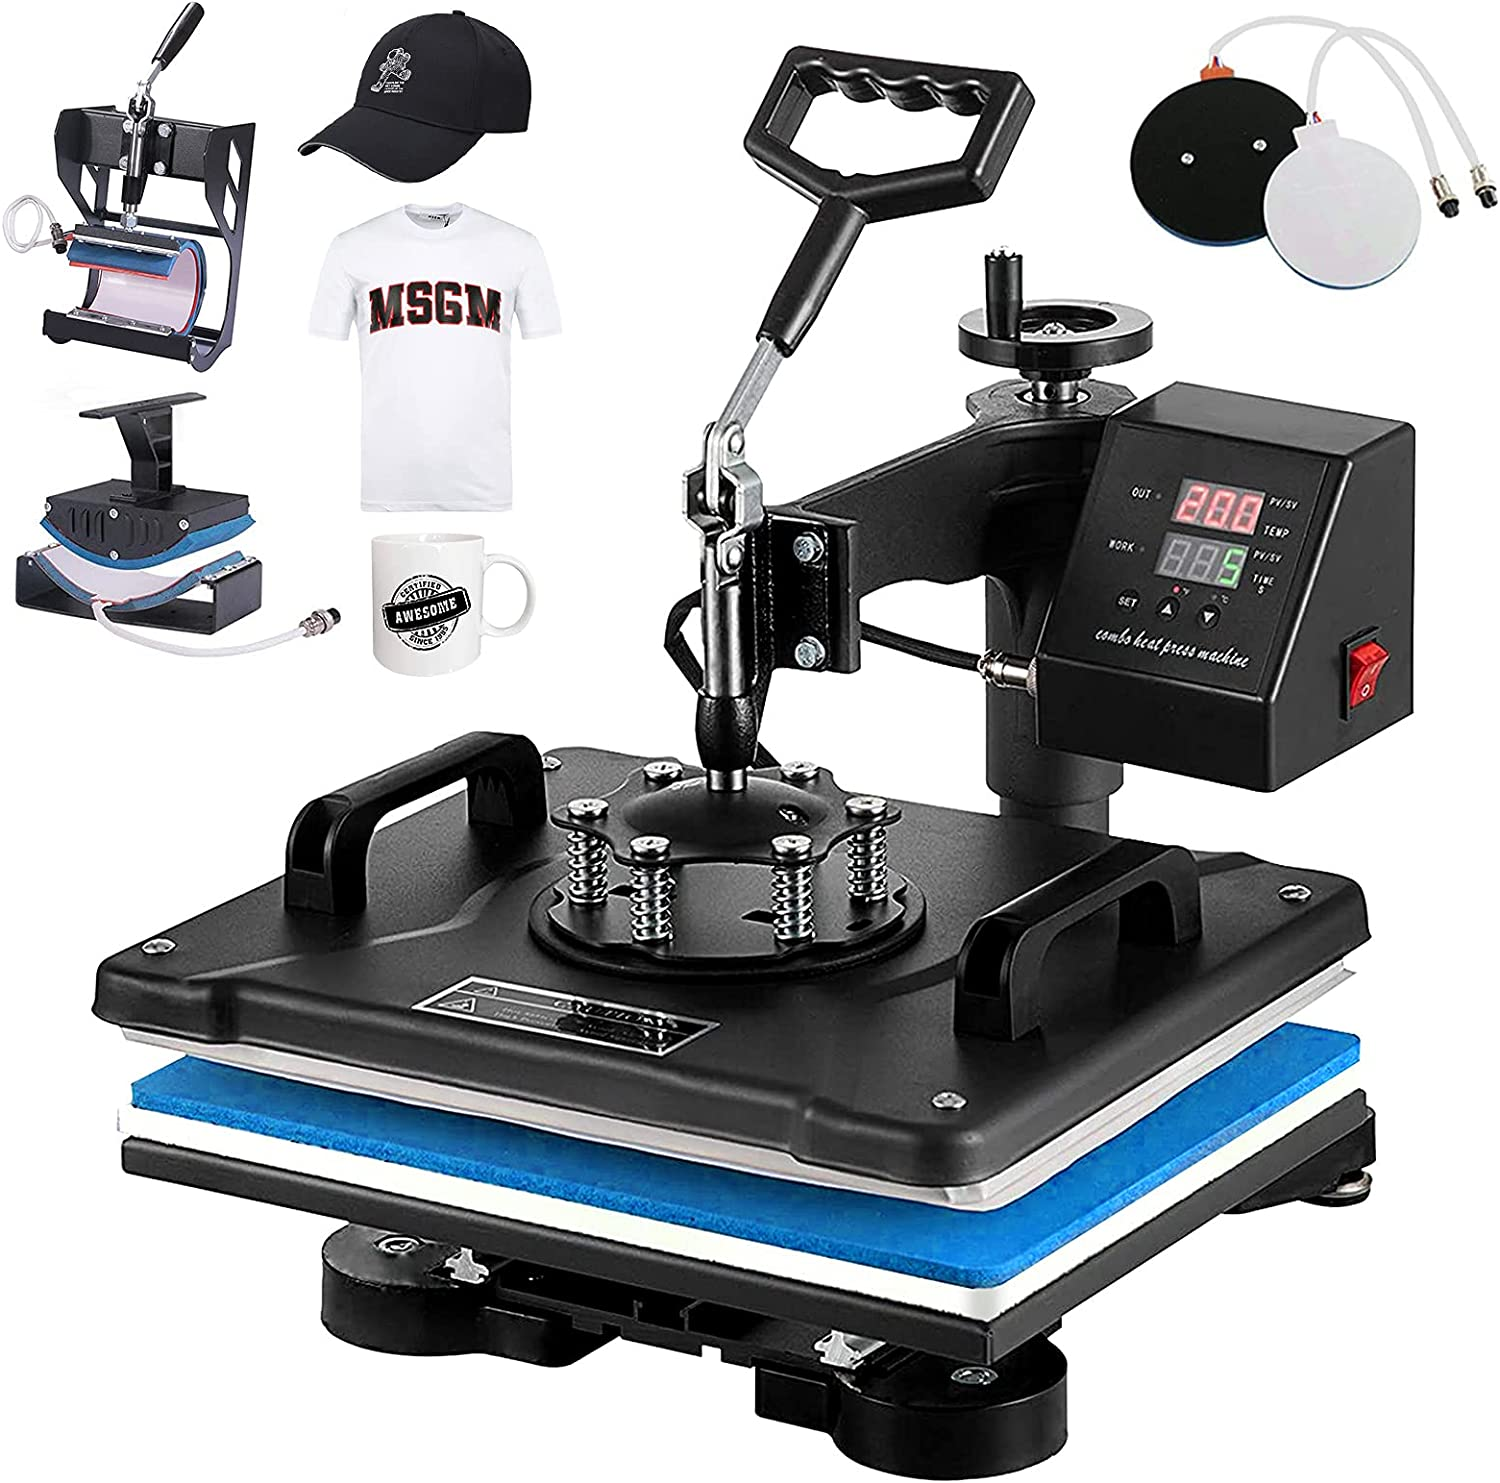 SURPCOS Heat Press Machine for T-Shirts 5 in 1